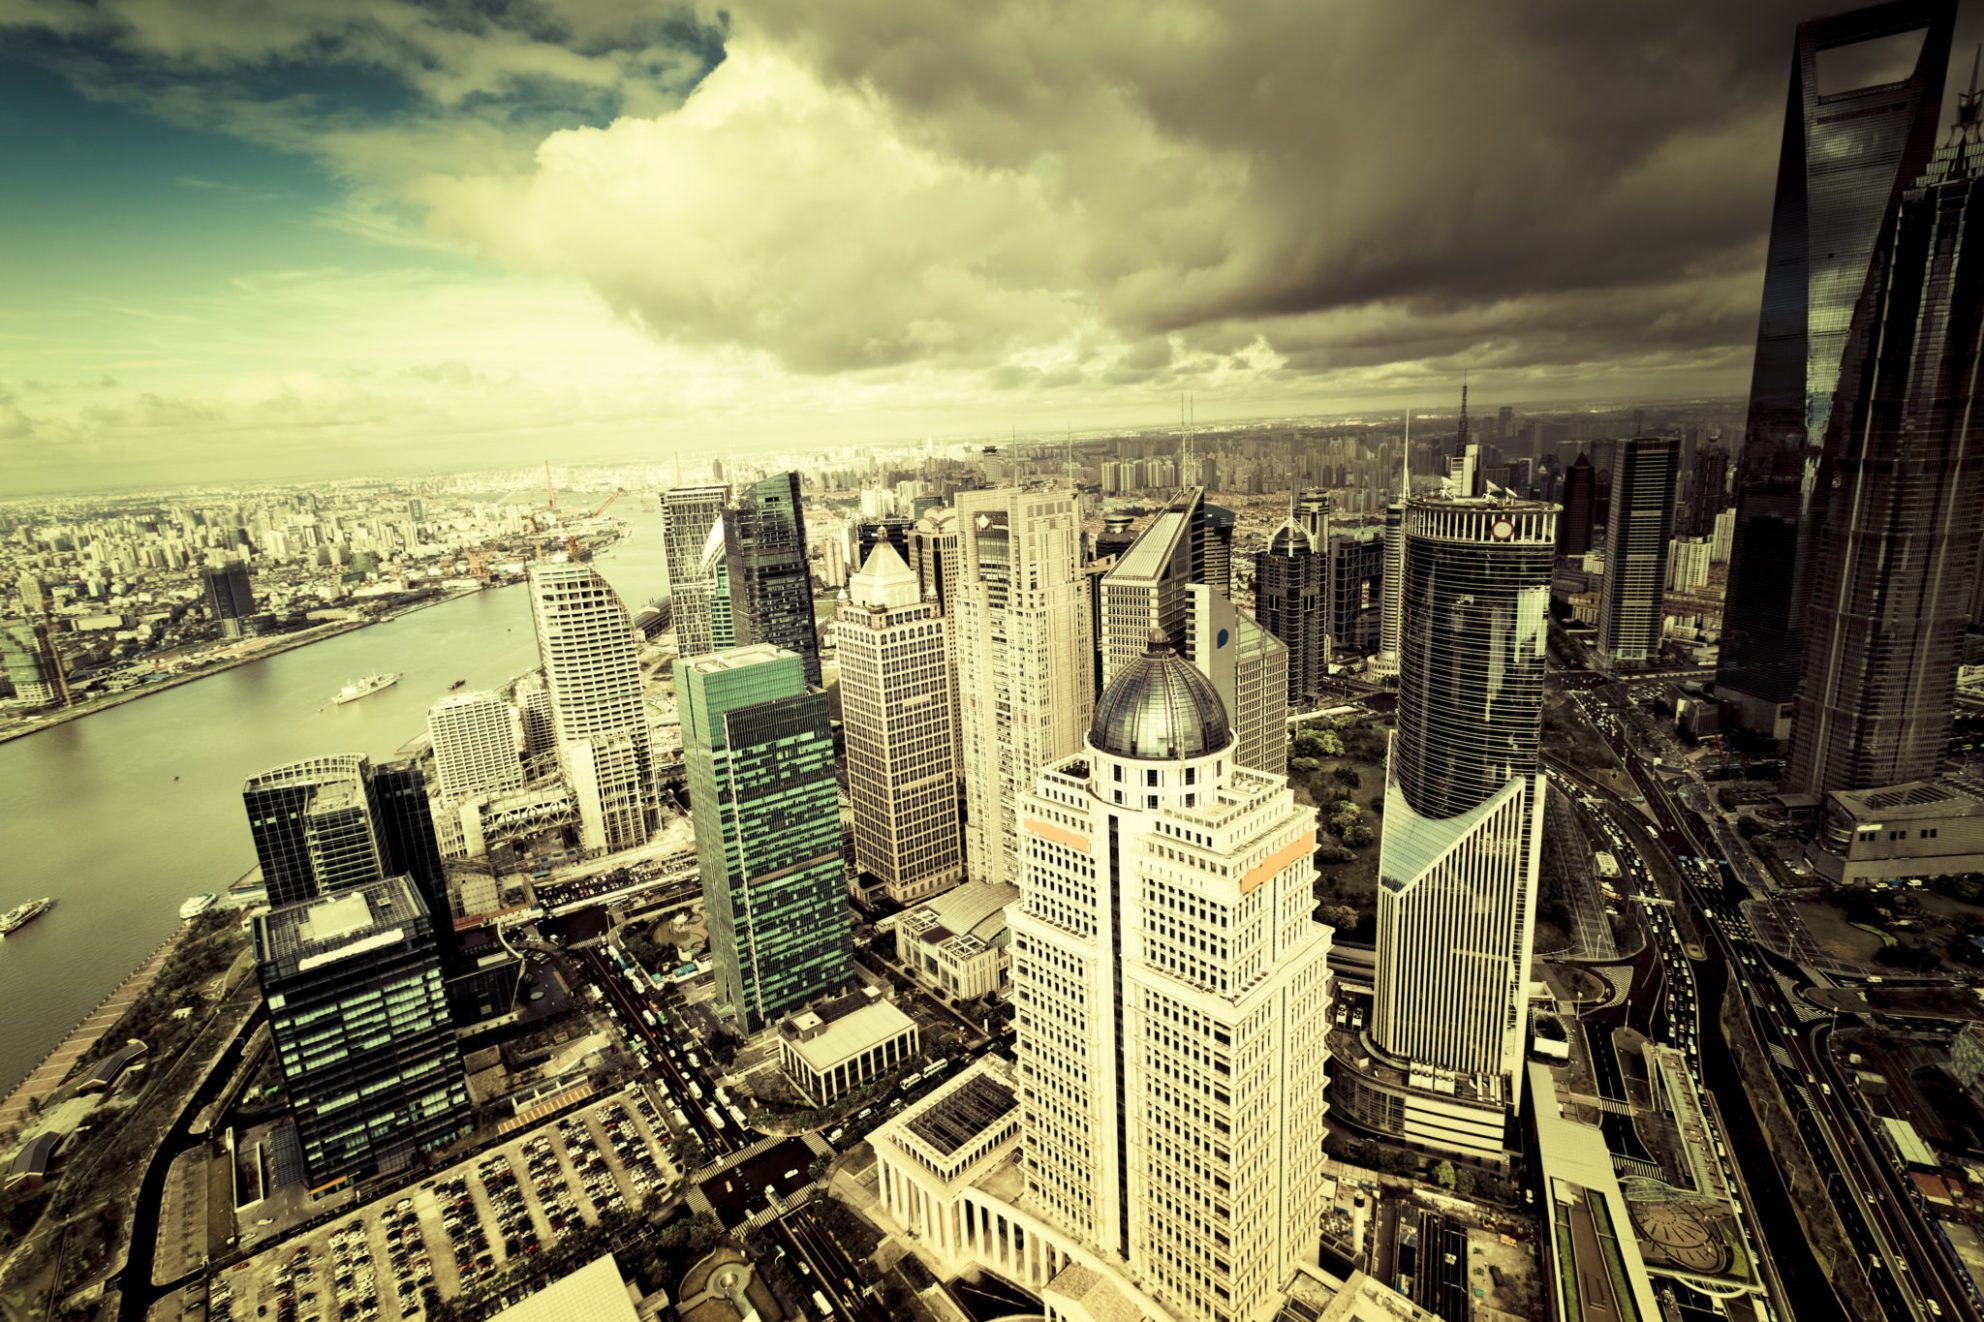 Overseas property show expected to bring 30,000 visitors to Shanghai